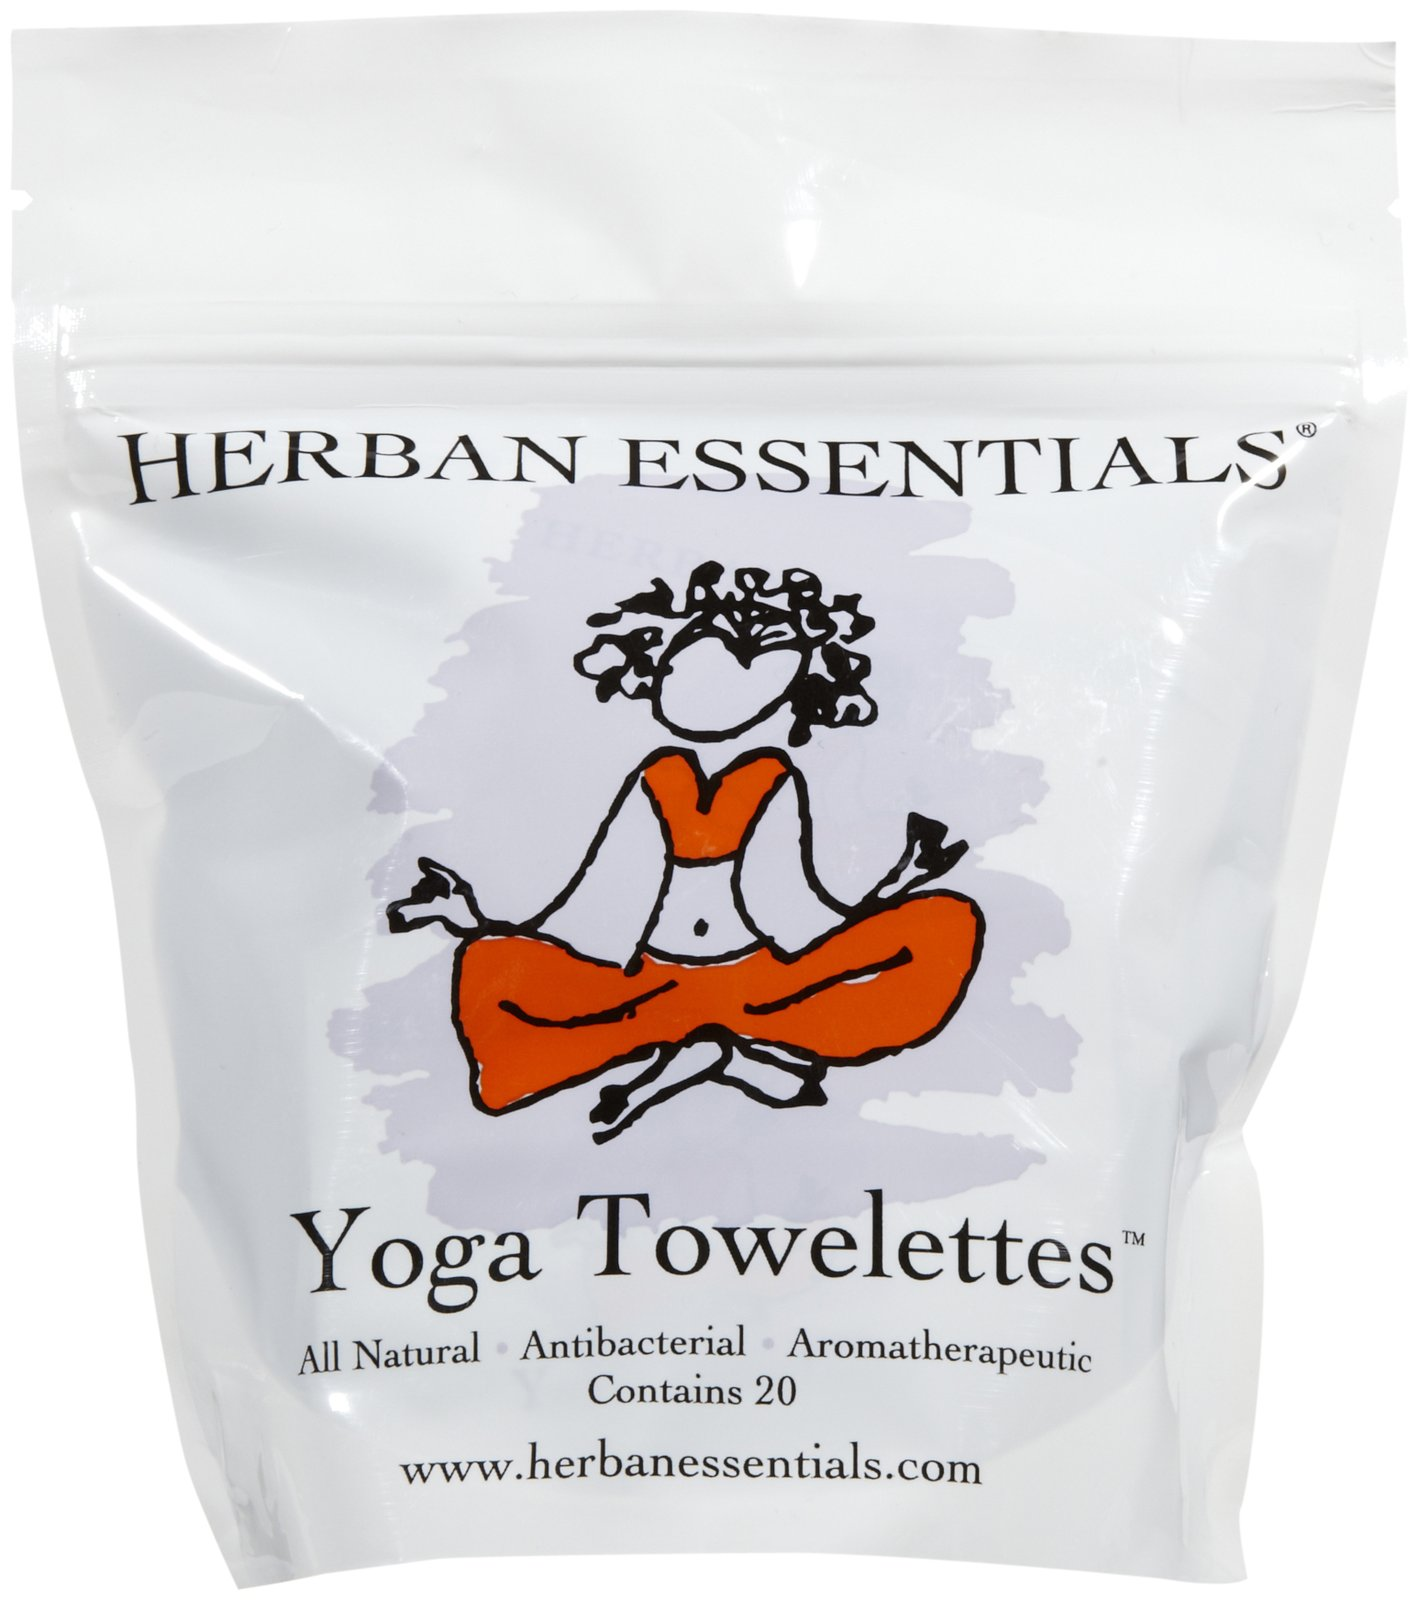 Herban Essentials Towelettes, Yoga